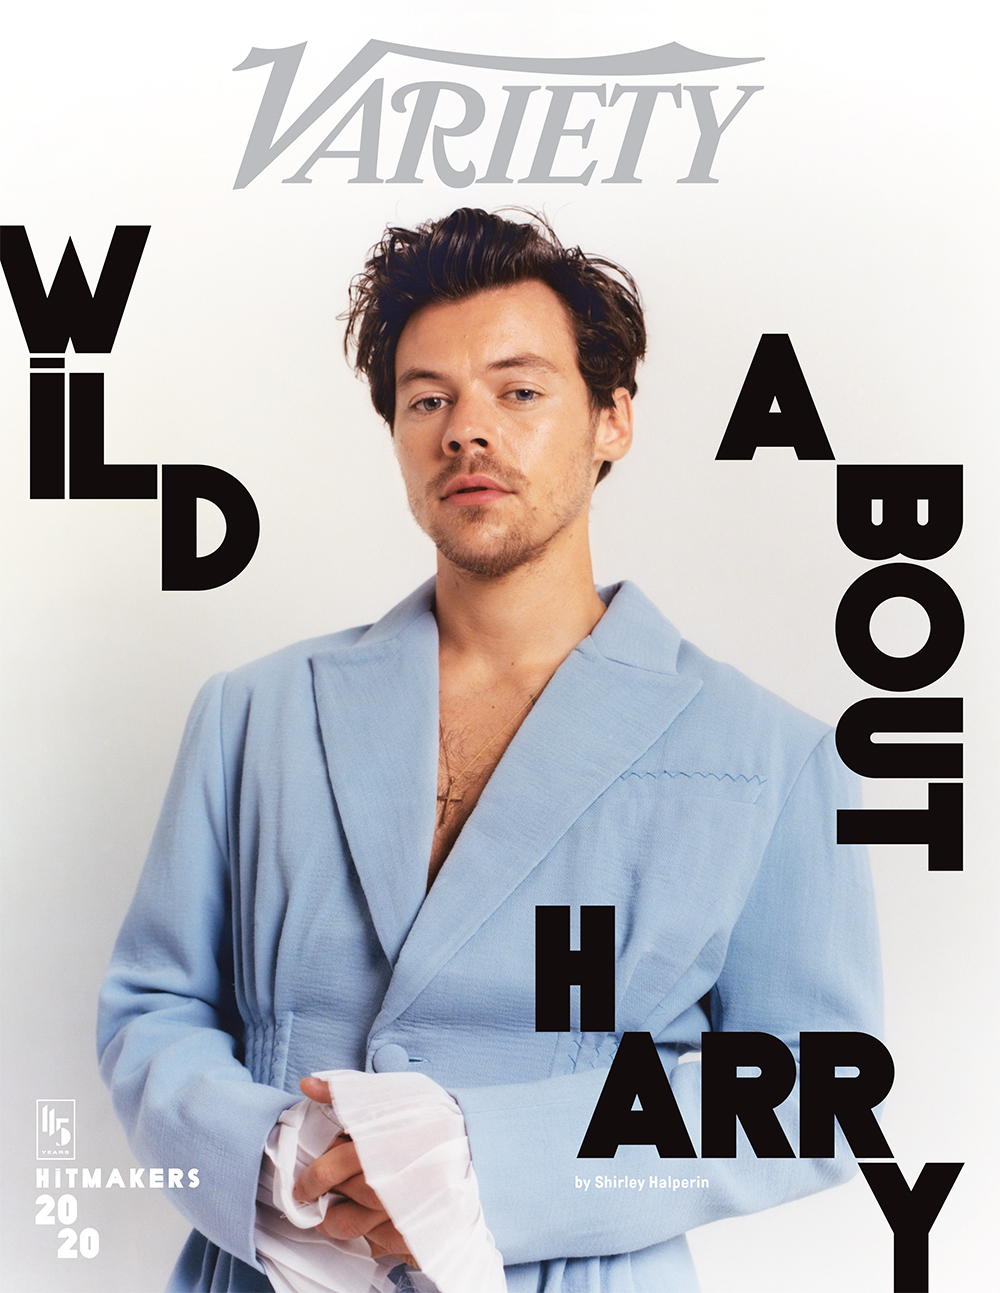 Variety-Harry-Styles-Hitmakers-Cover-FOR